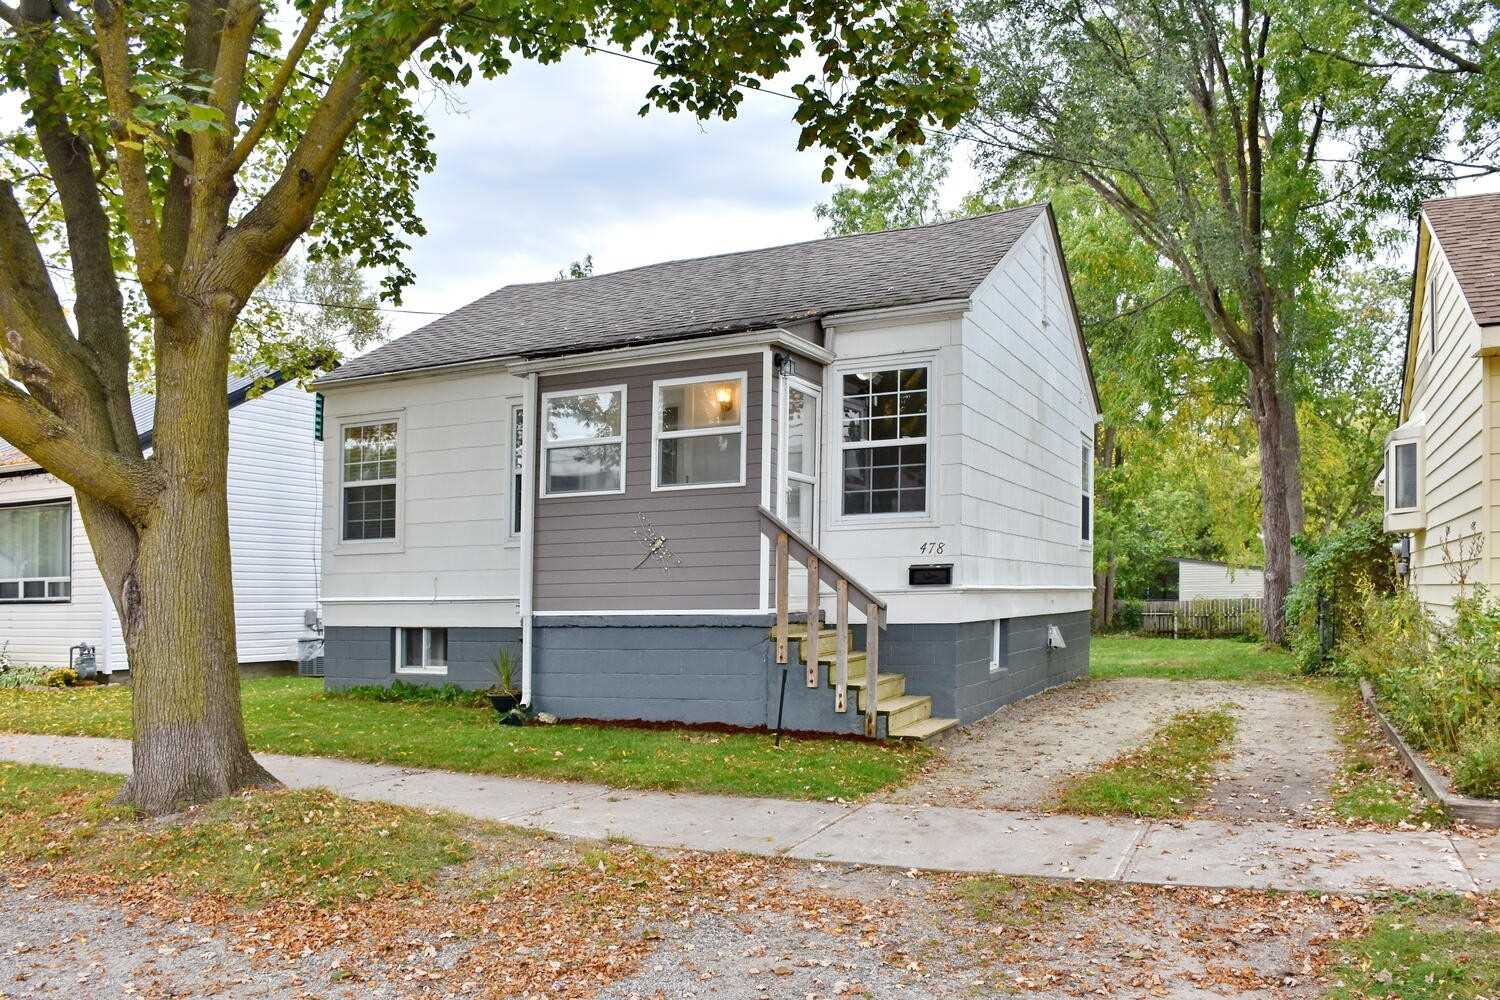 Detached house For Sale In Collingwood - 478 Maple St, Collingwood, Ontario, Canada L9Y 2S3 , 3 Bedrooms Bedrooms, ,1 BathroomBathrooms,Detached,For Sale,Maple